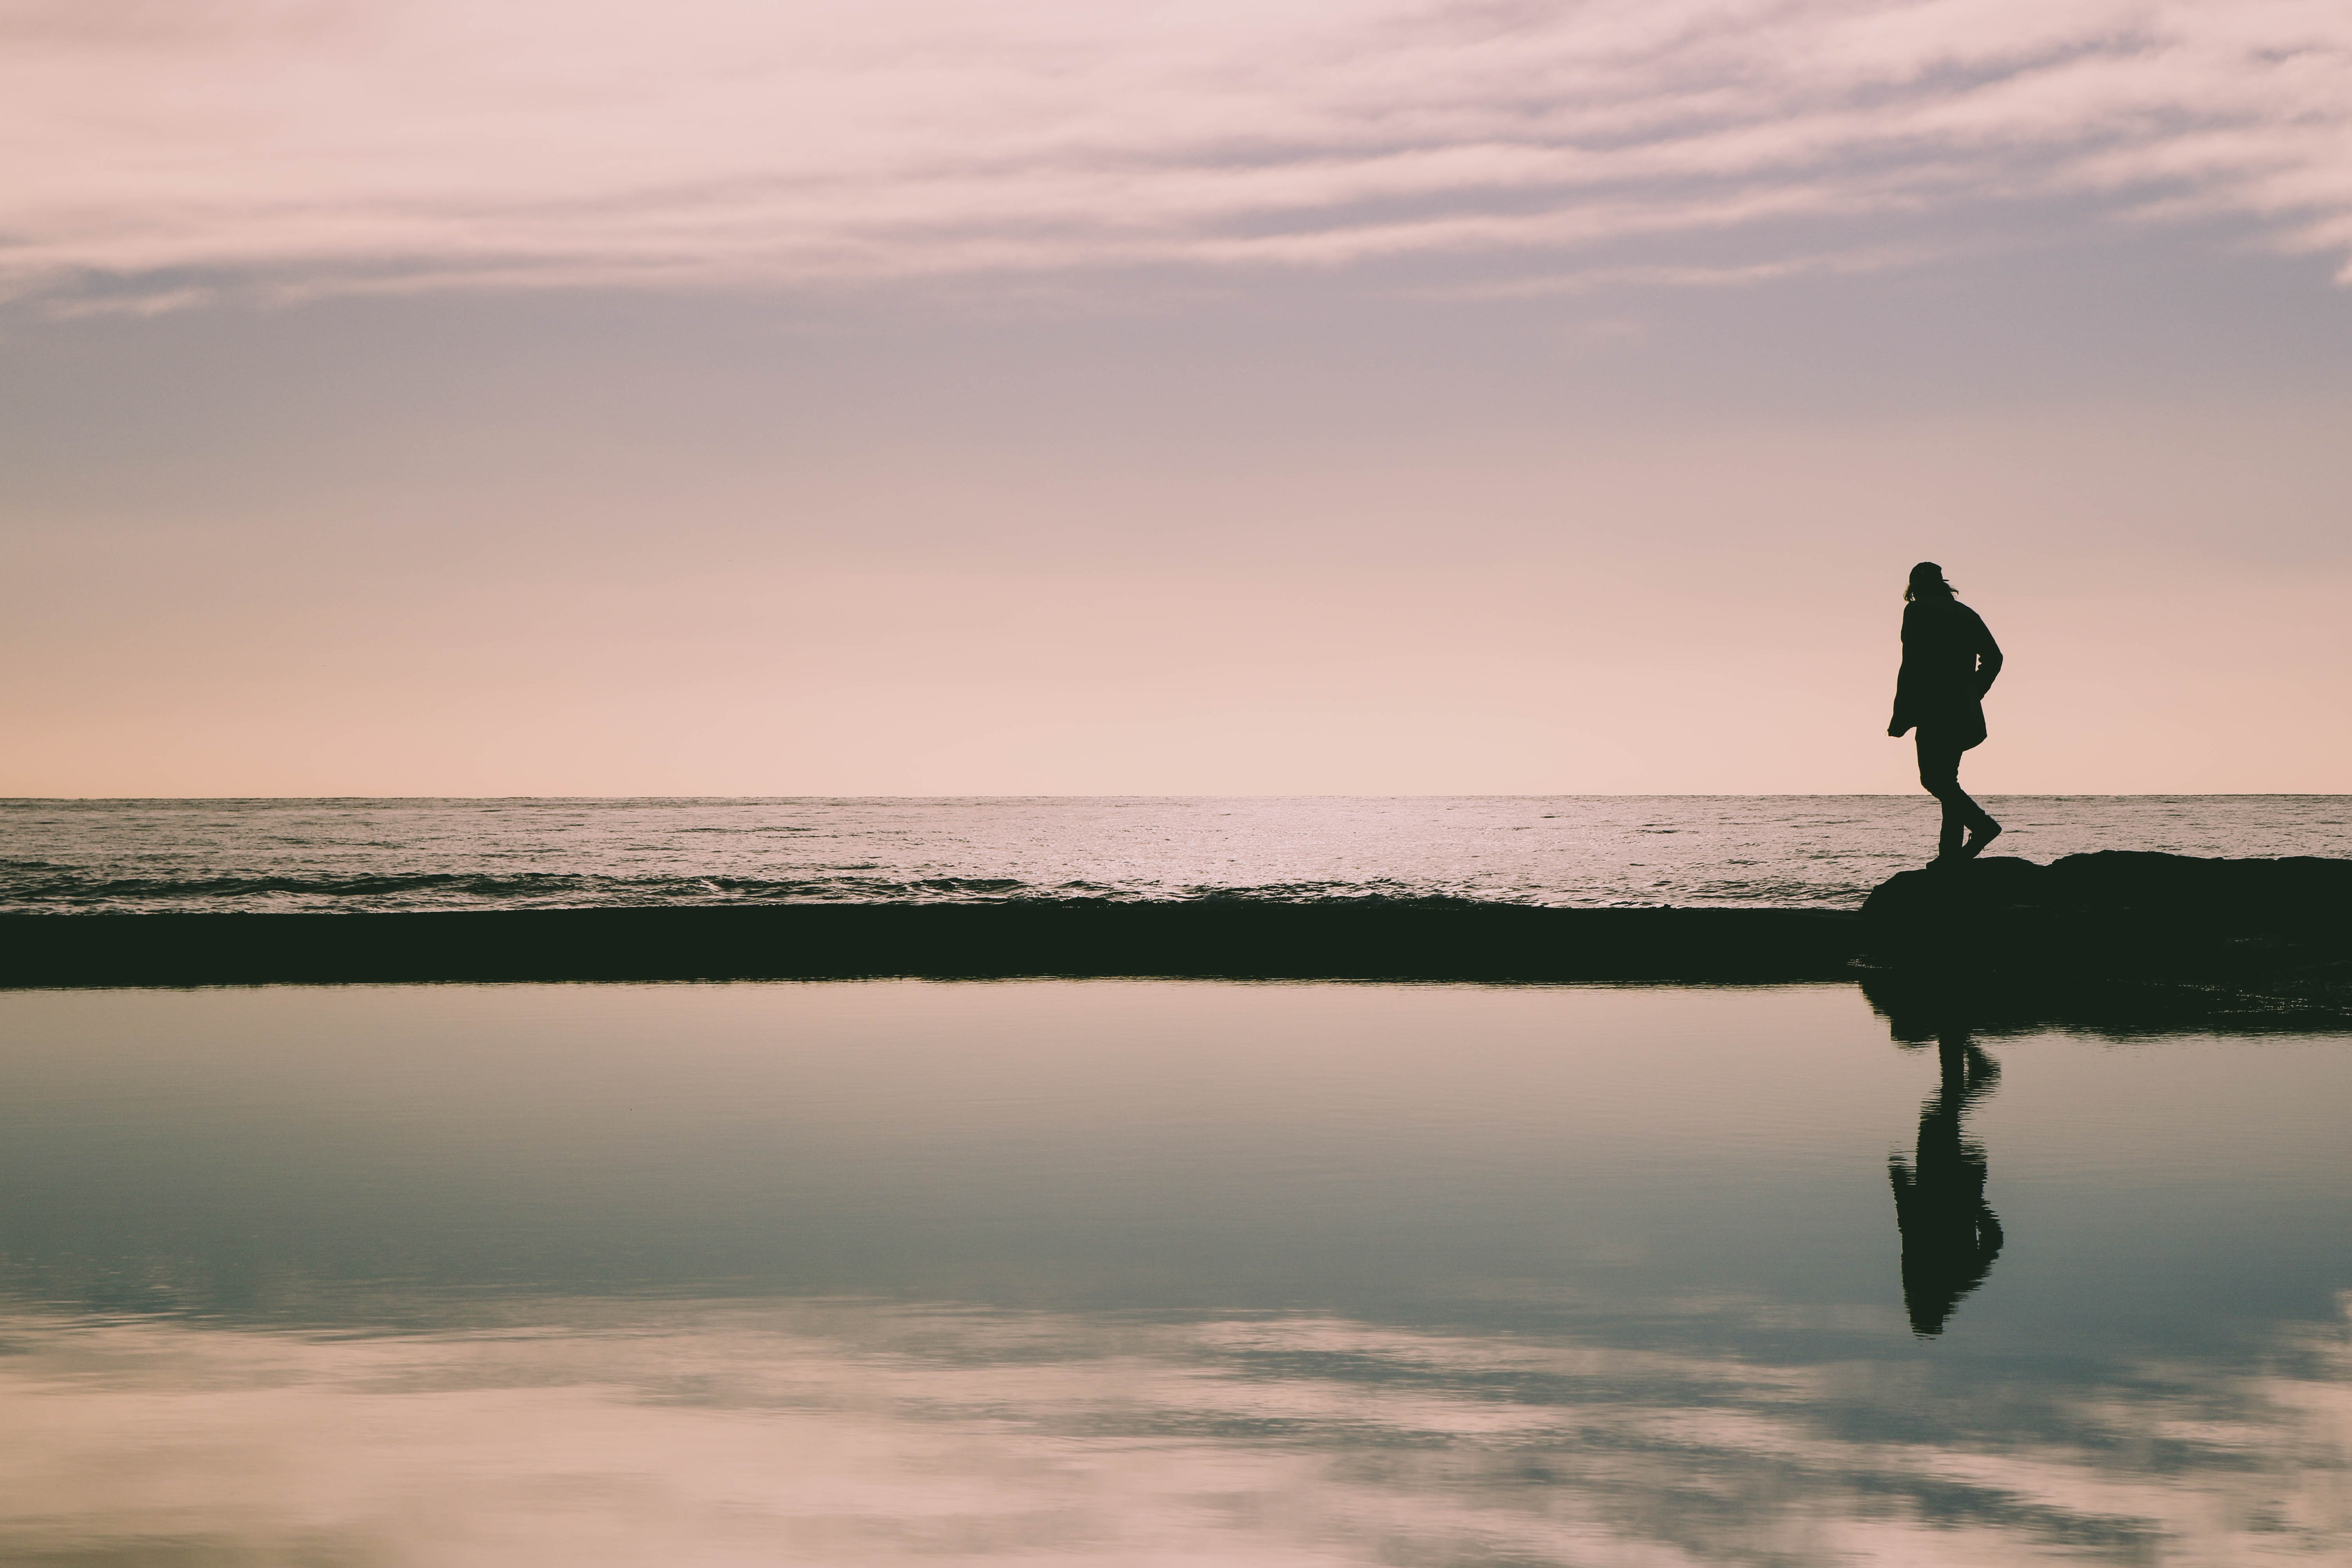 silhouette of woman on rock formation in seashore